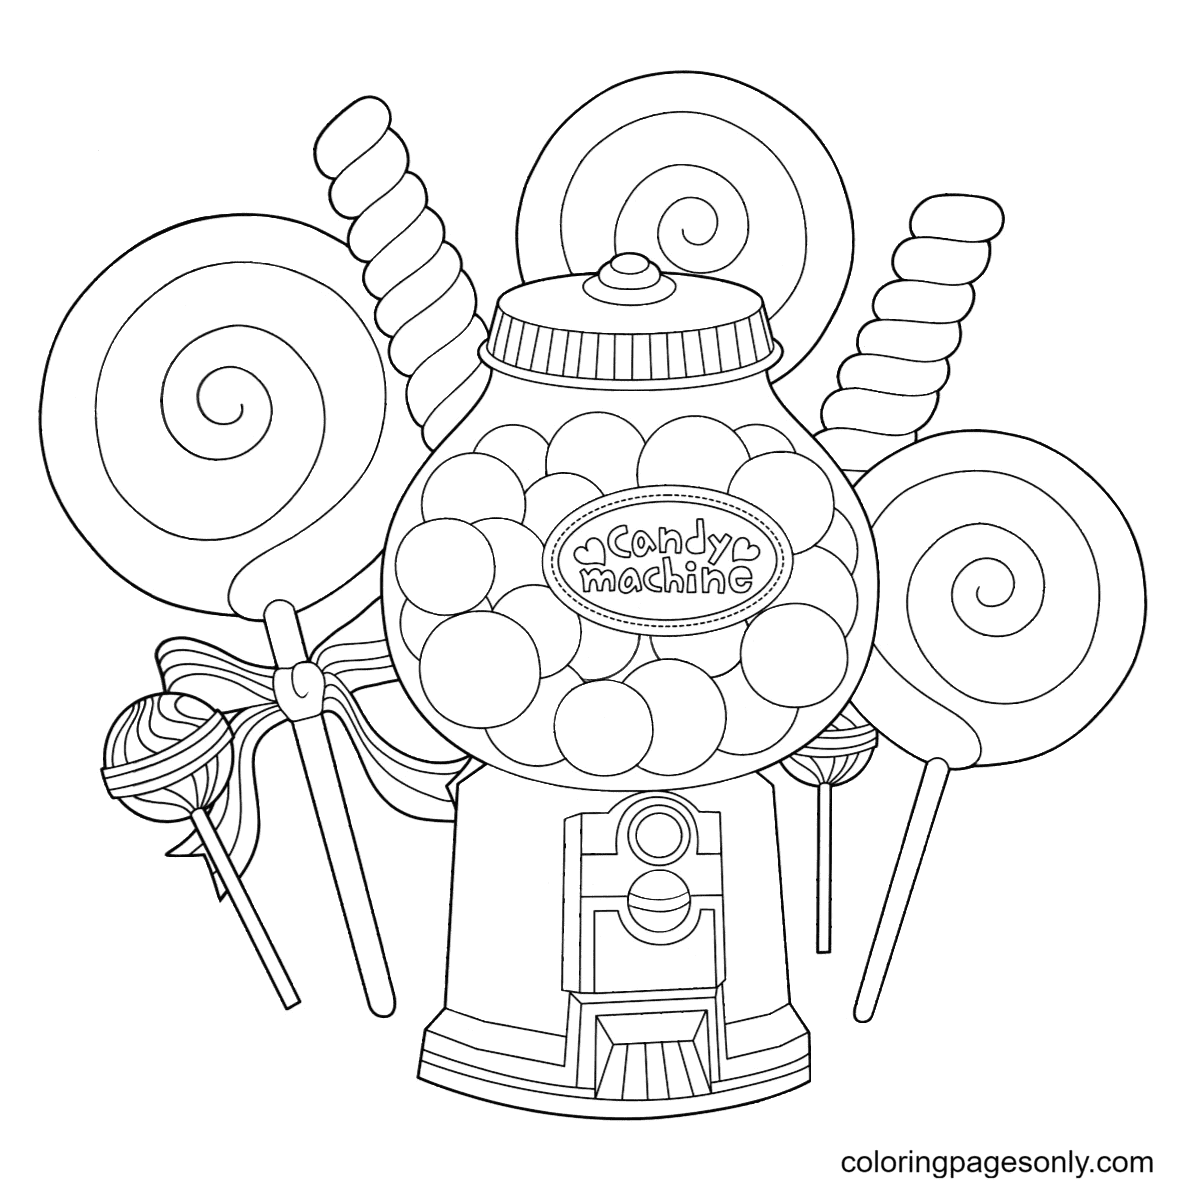 Types of Candies Coloring Page